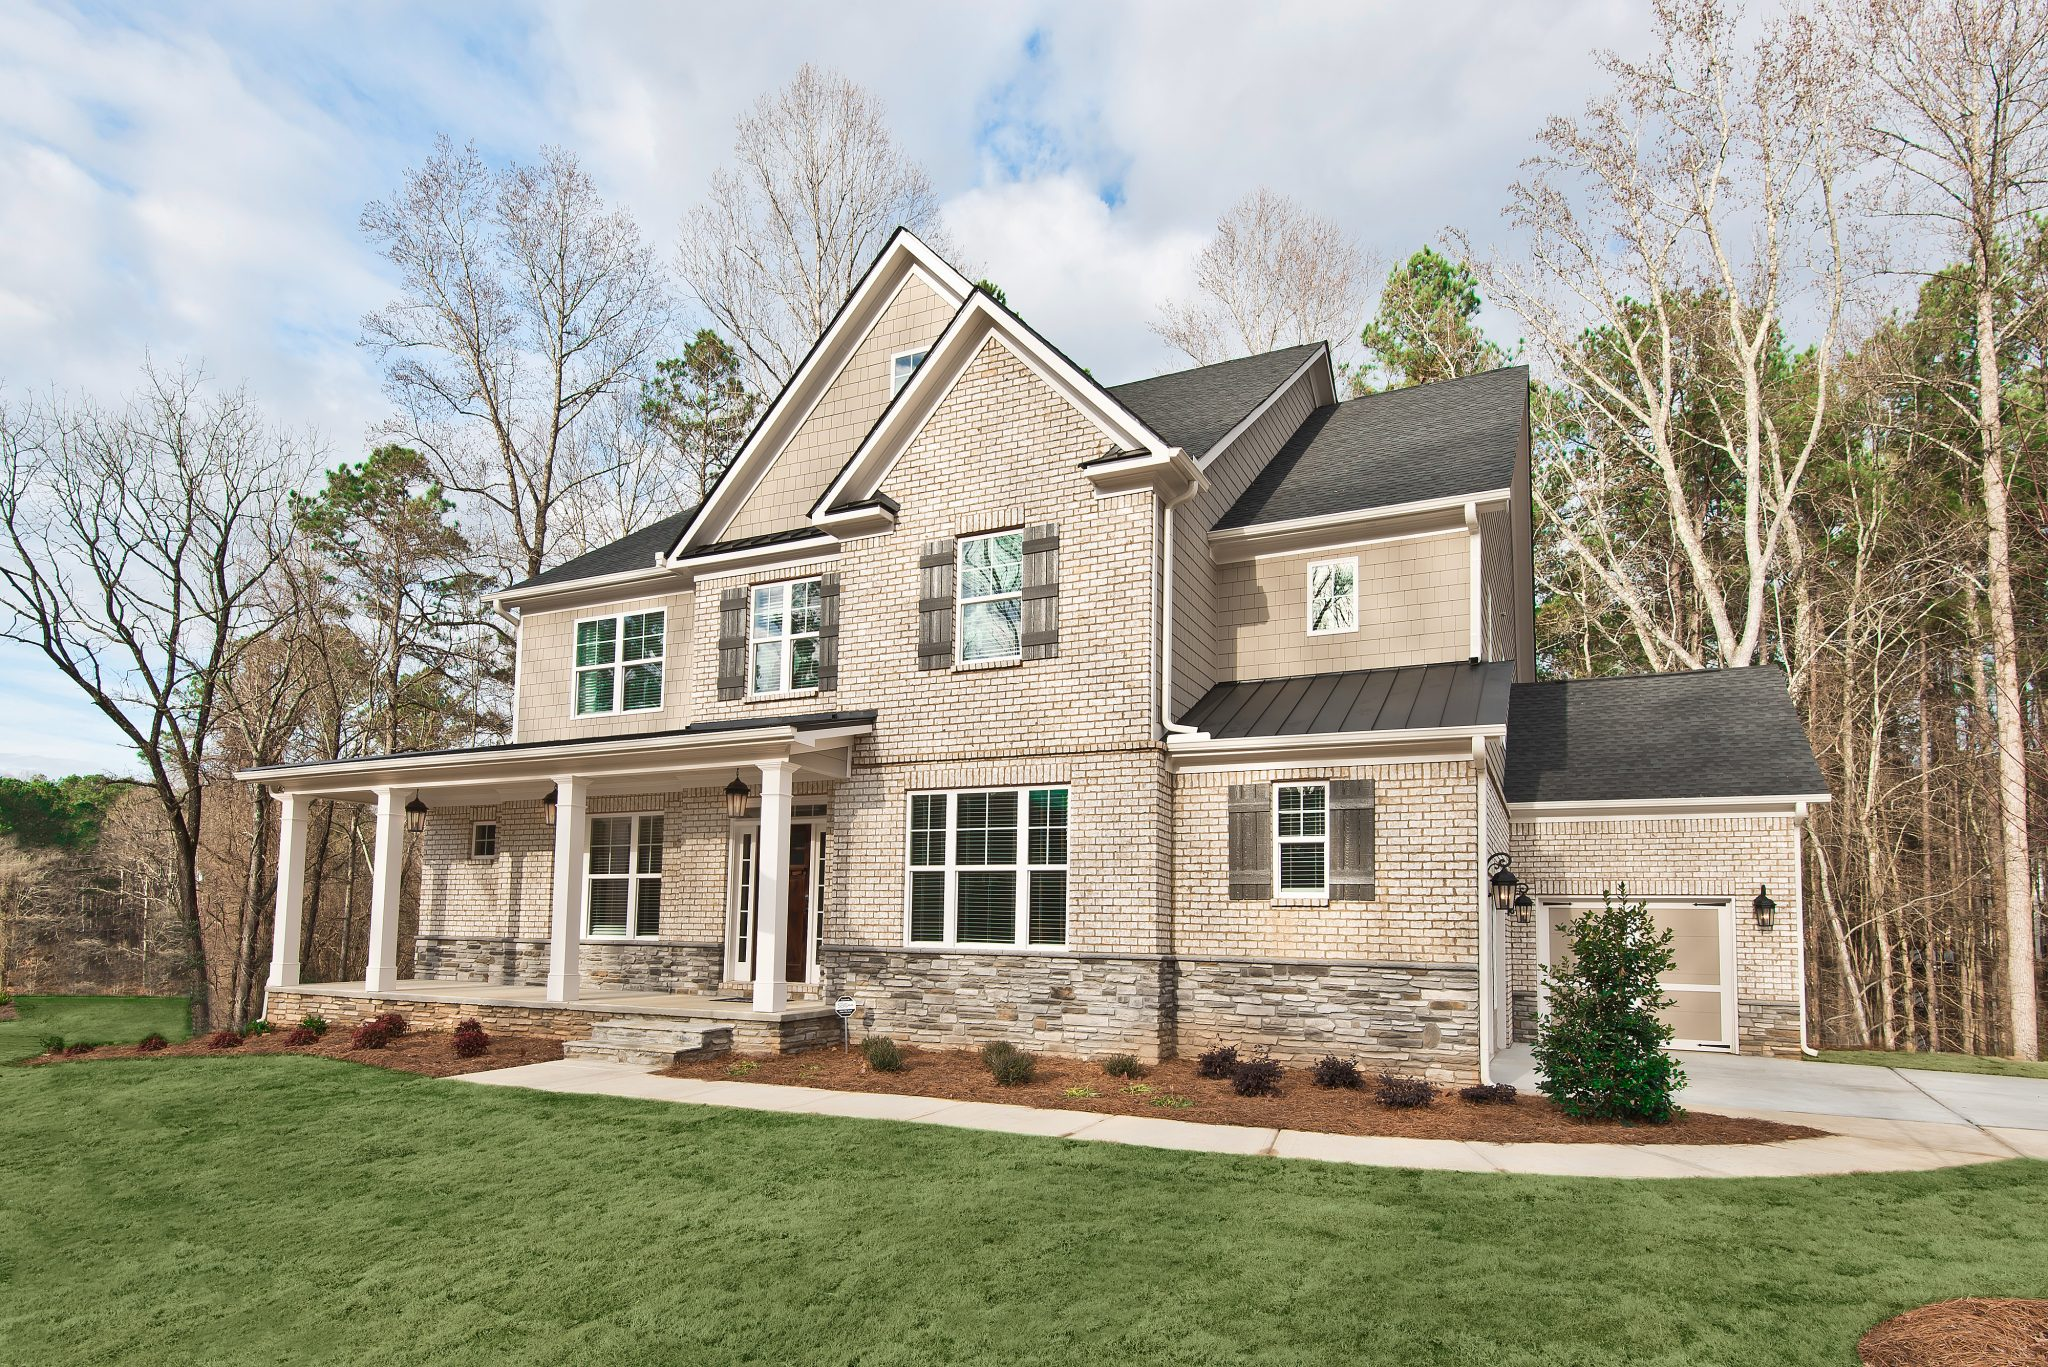 A Gunnerson Pointe Home in Kennesaw